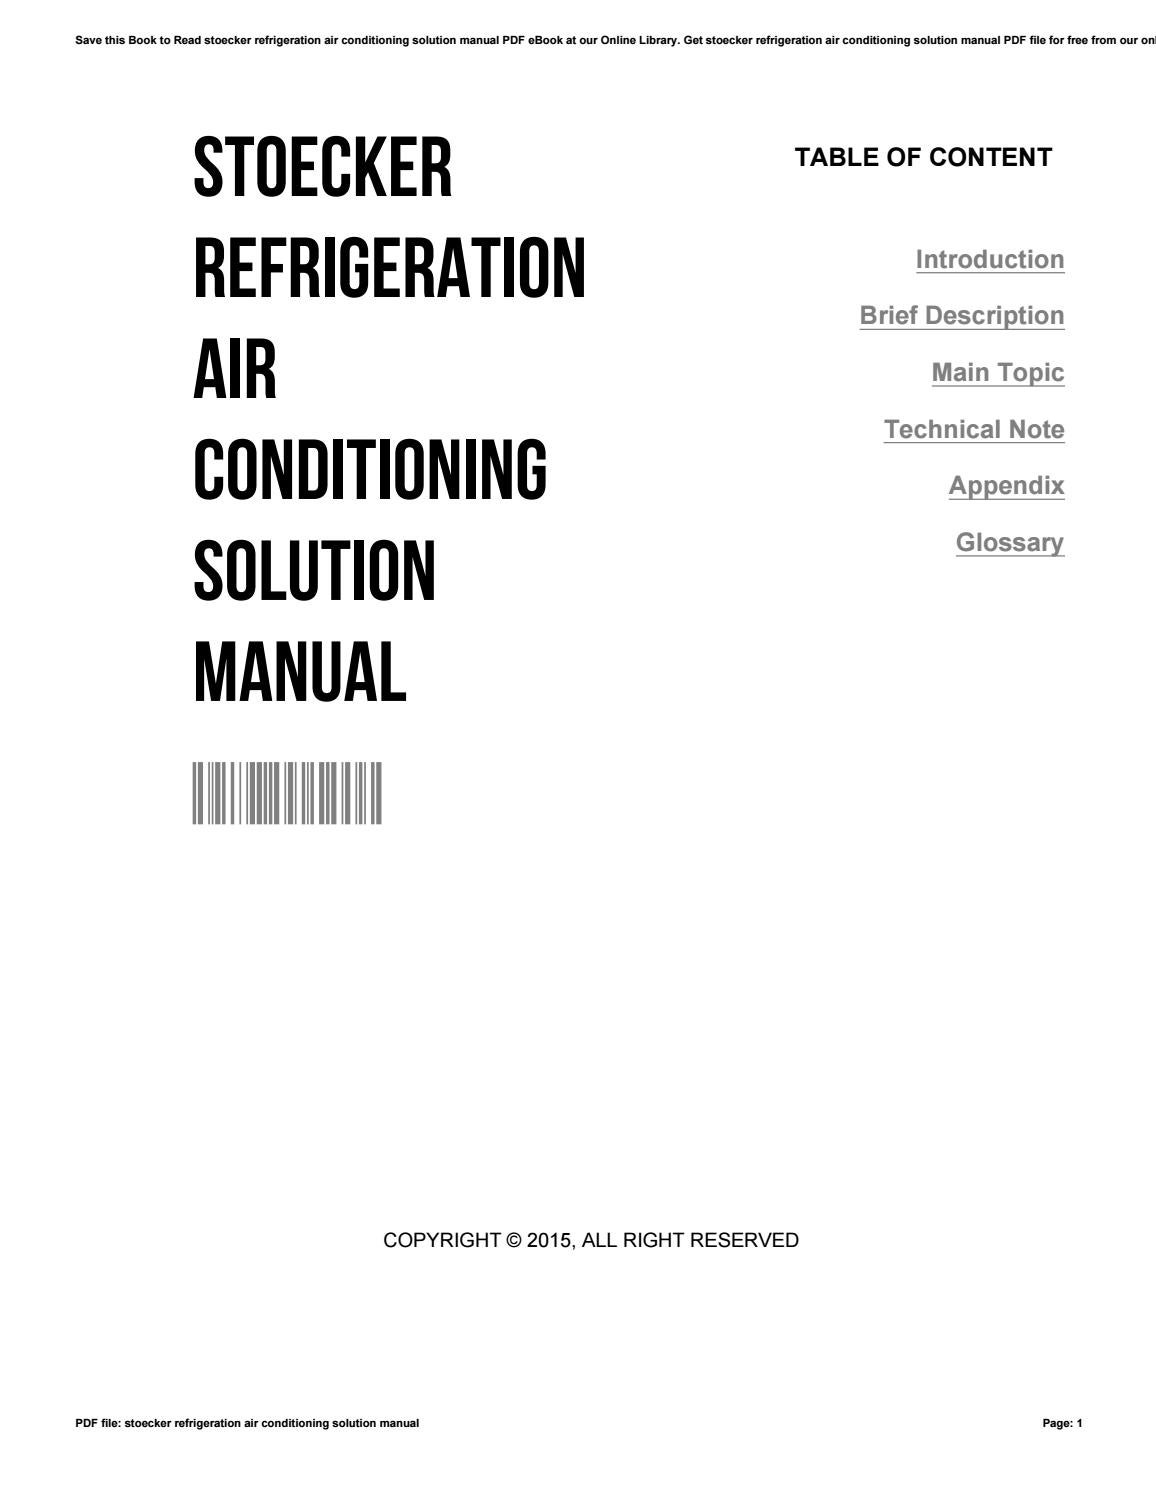 Stoecker refrigeration air conditioning solution manual by